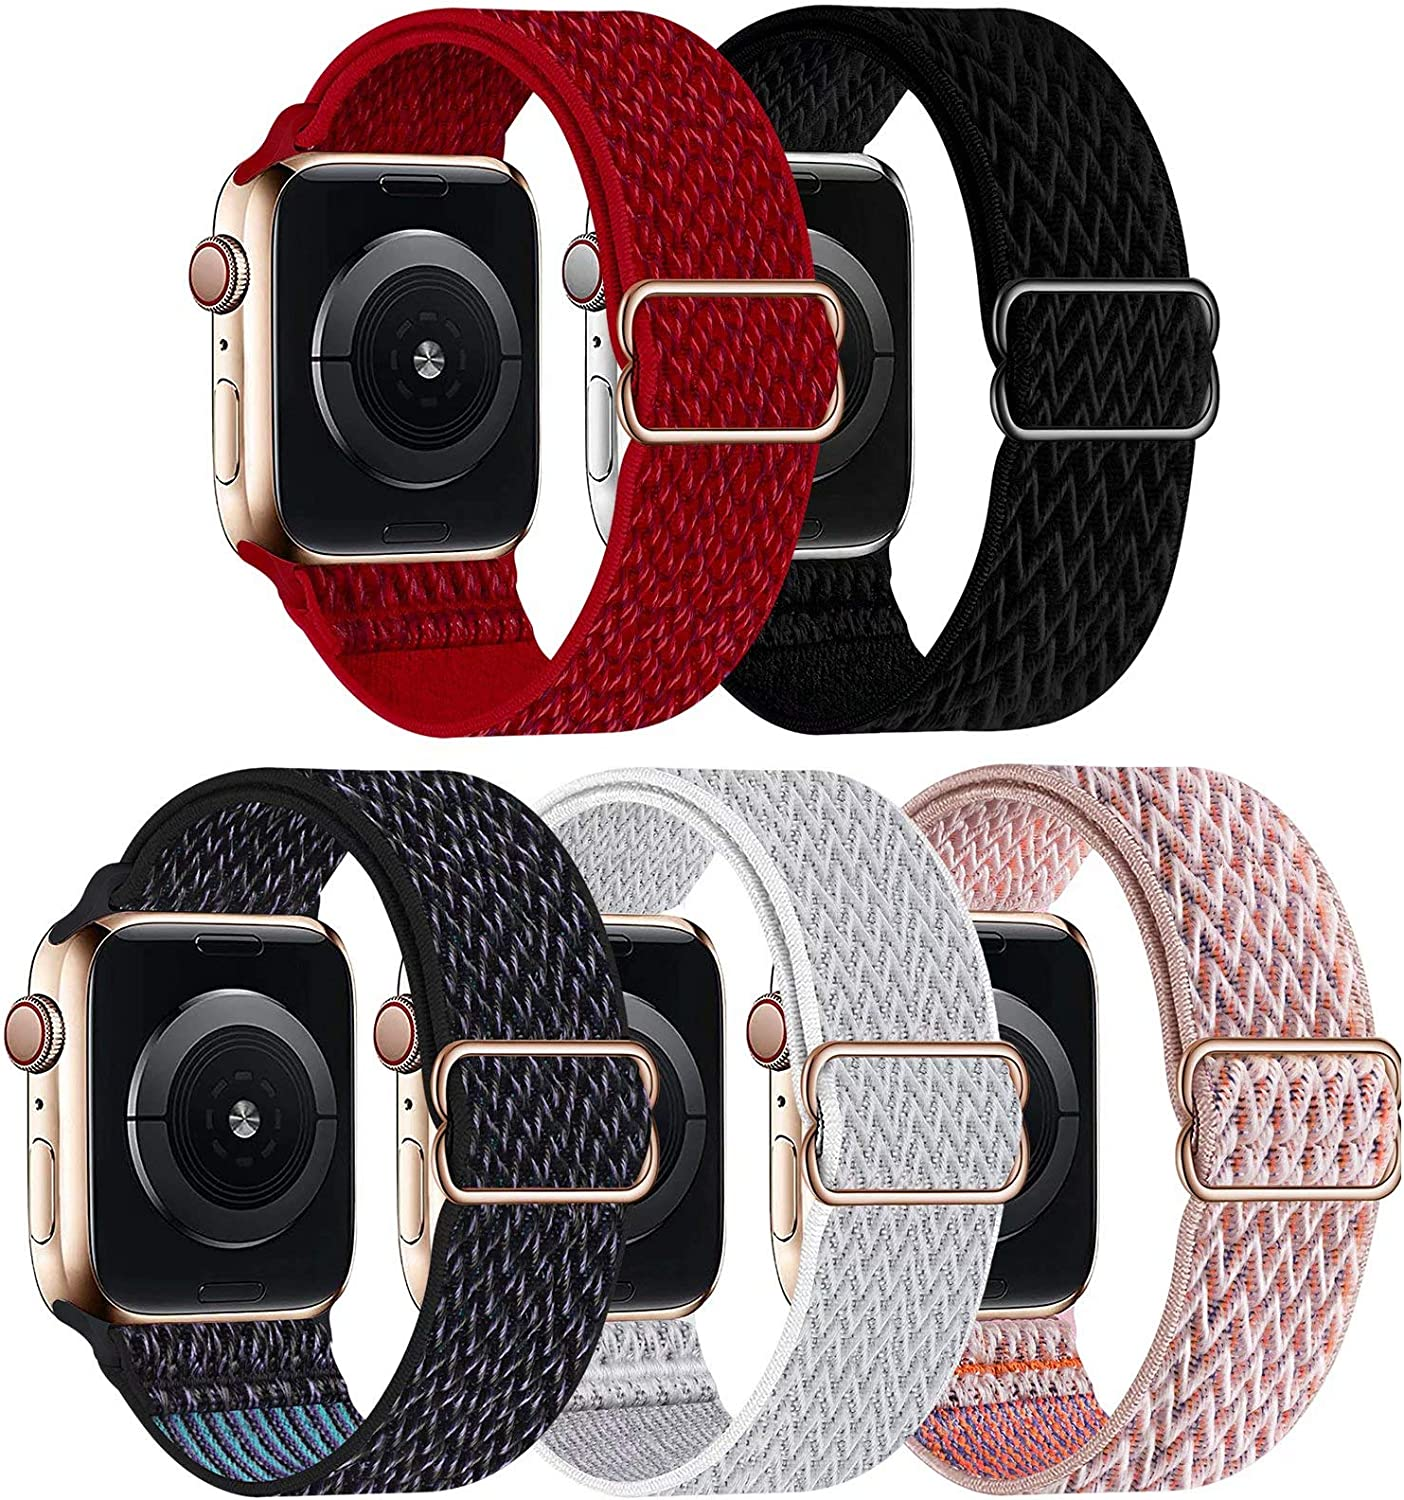 GBPOOT 5 Packs Nylon Stretch Band Compatible with Apple Watch Bands,Adjustable Soft Sport Breathable Loop for Iwatch Series 6/5/4/3/2/1/SE,Red/Black/Hyper Grape/Seashell/Pink Sand,38/40mm